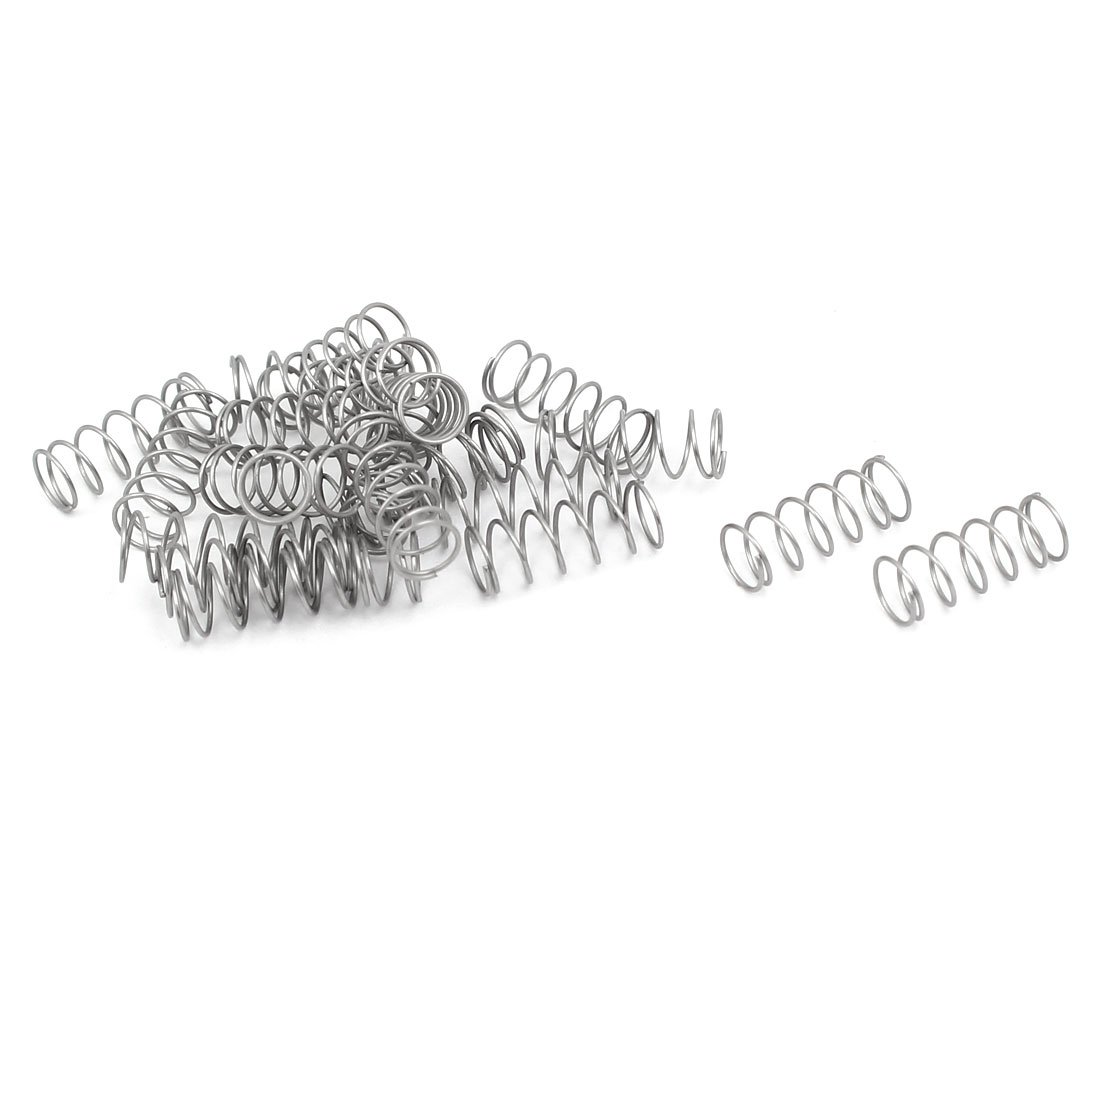 uxcell Compression Spring,304 Stainless Steel,4mm OD,0.3mm Wire